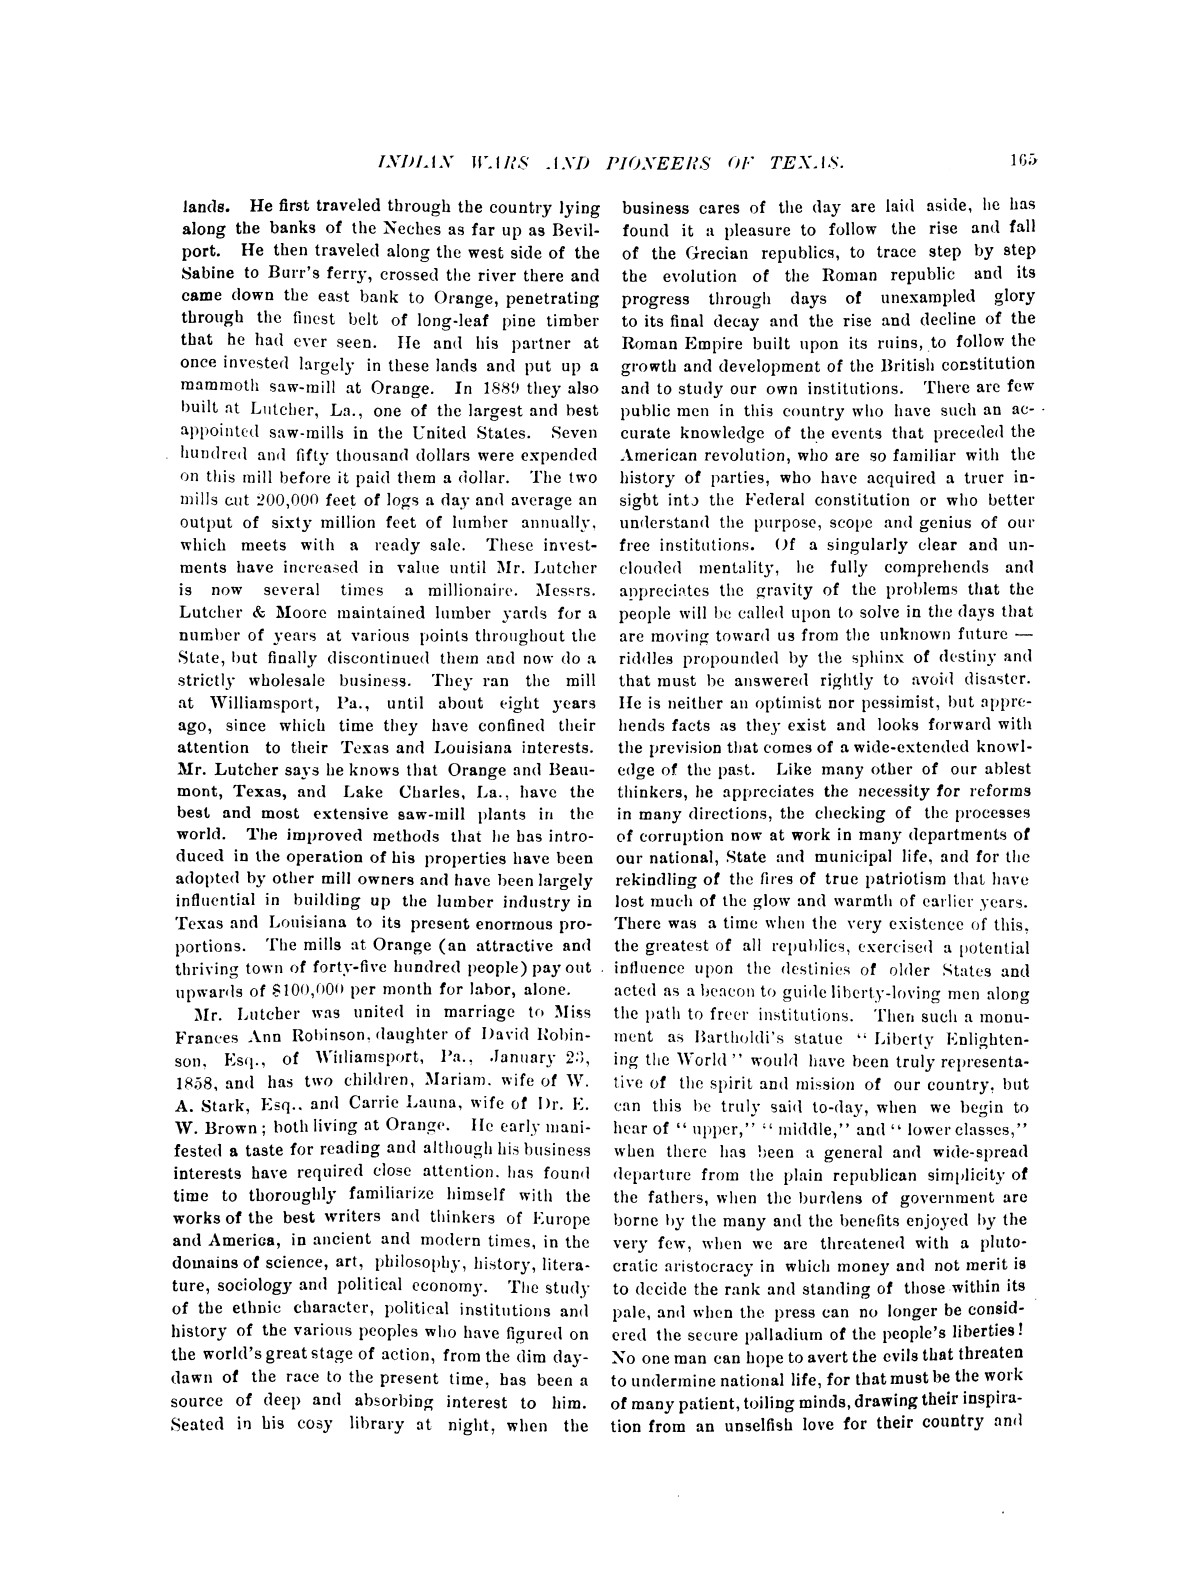 Indian wars and pioneers of Texas / by John Henry Brown.                                                                                                      [Sequence #]: 181 of 894